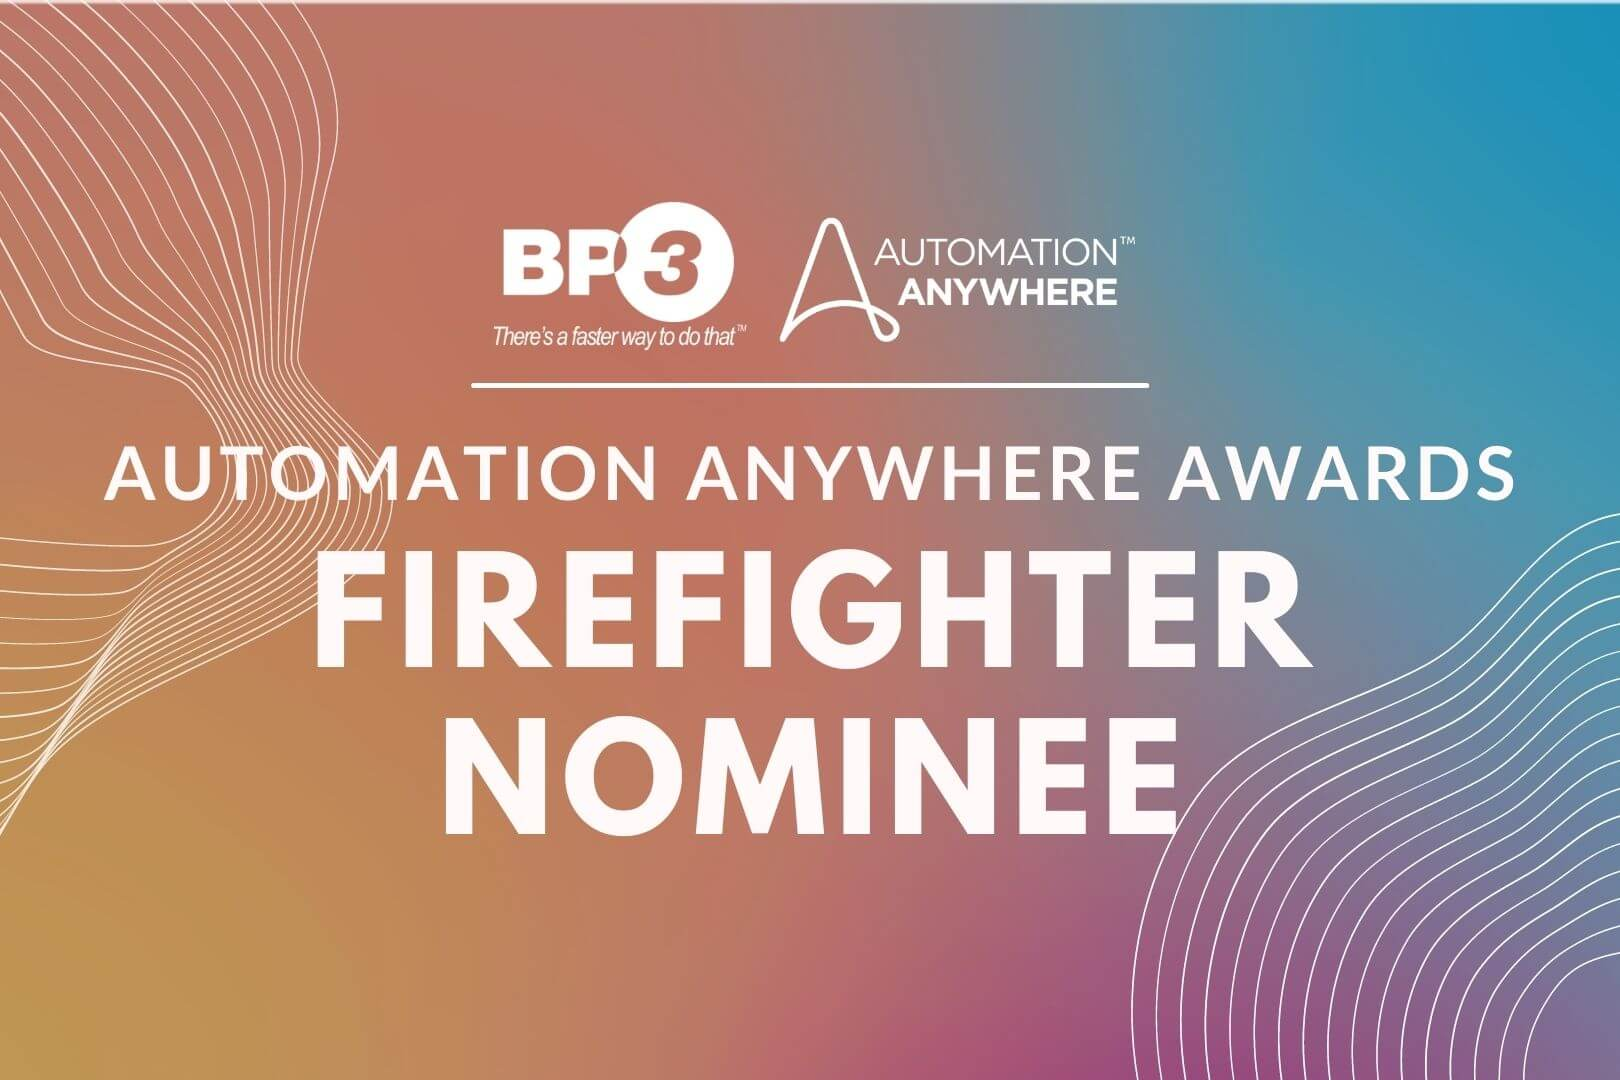 Automation Anywhere Firefighter Award Nominee | For responding to a customer crisis situation outside of their everyday activities | BP3 Global, Inc.